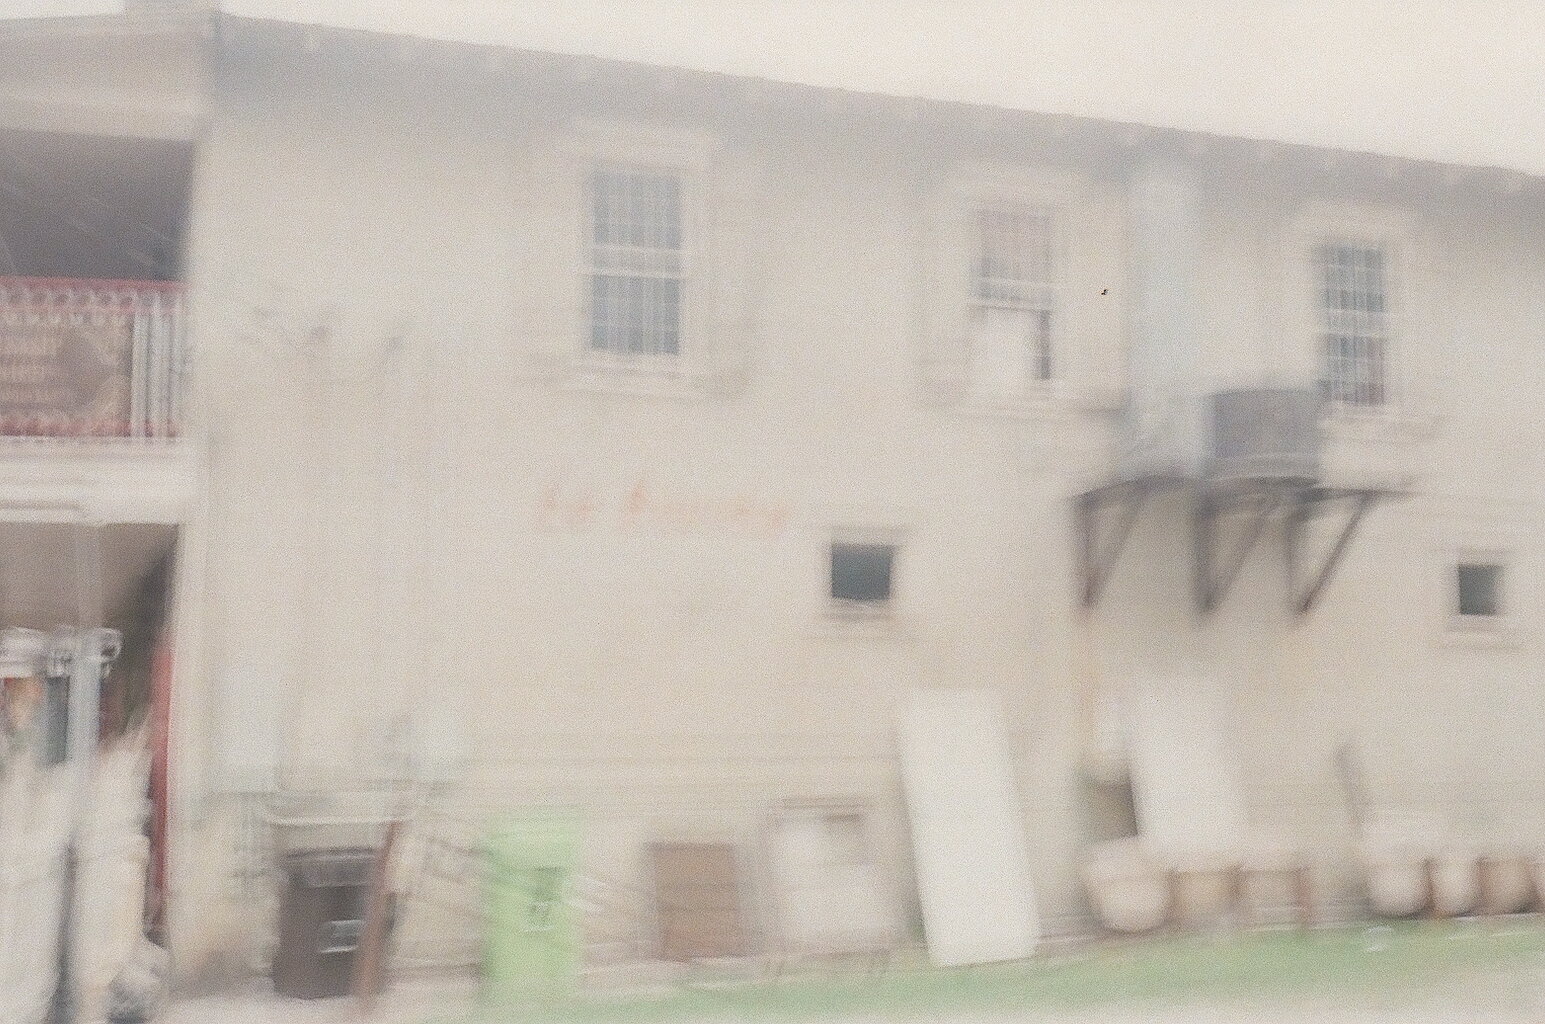 An attempted photo of a hand painted sign on the side of an antique store